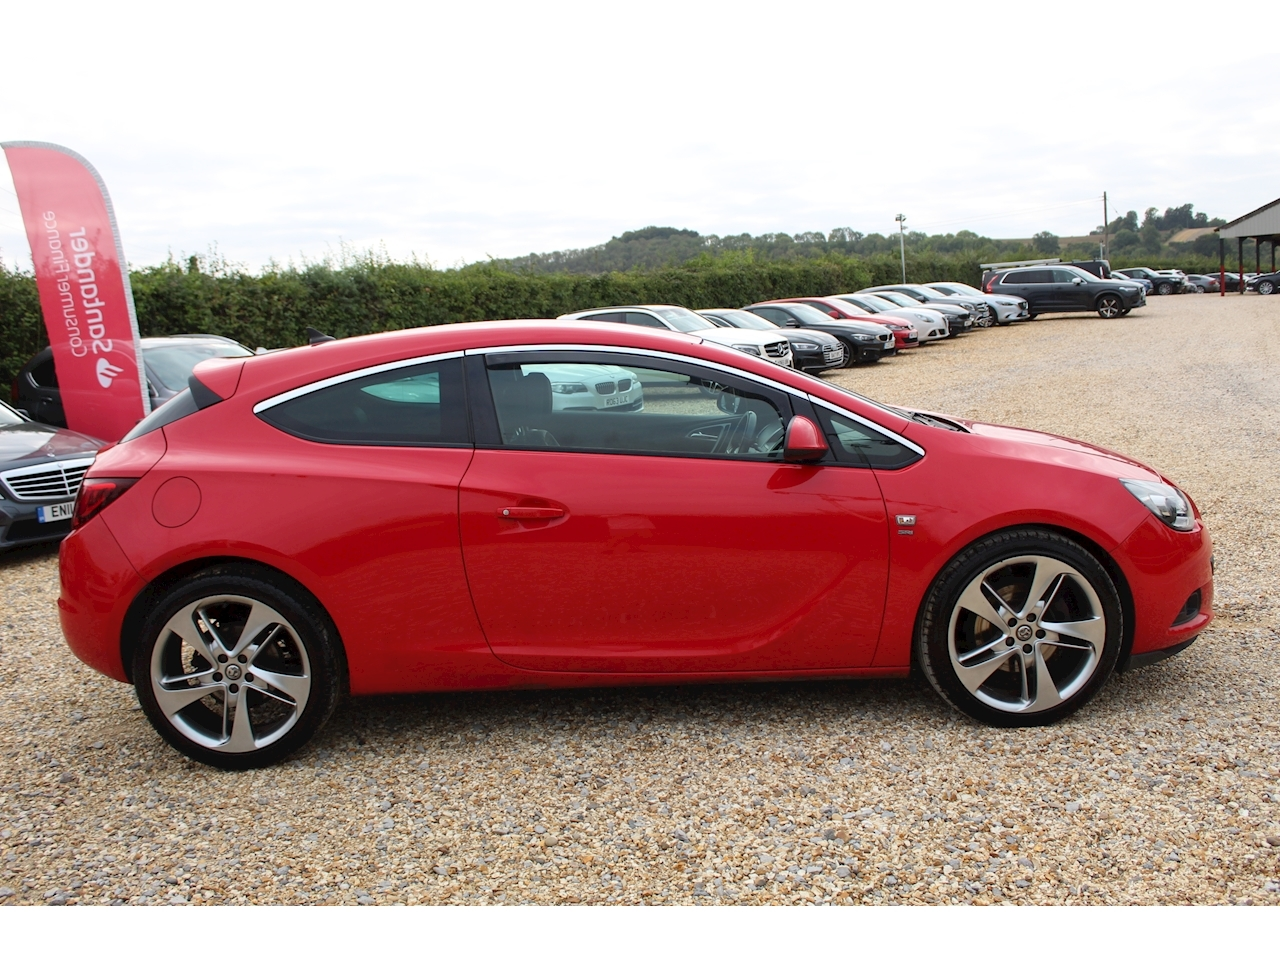 Vauxhall Astra GTC SRi Coupe 2.0 Manual Diesel